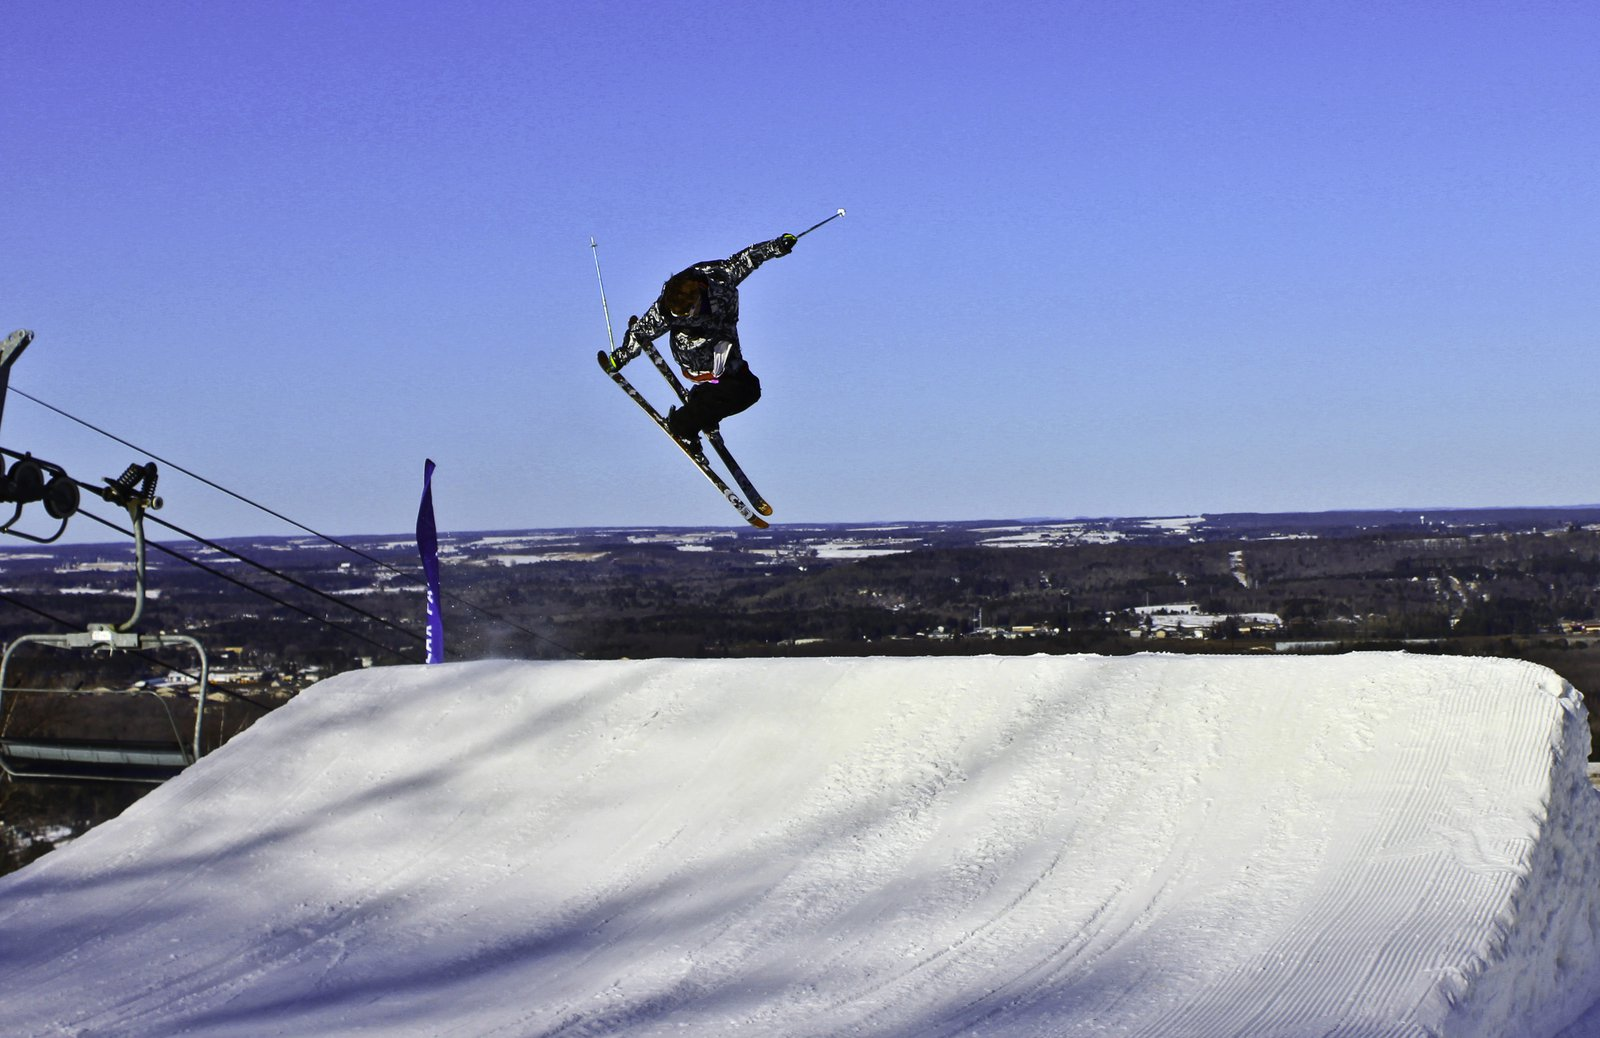 Little Tail Grab Action